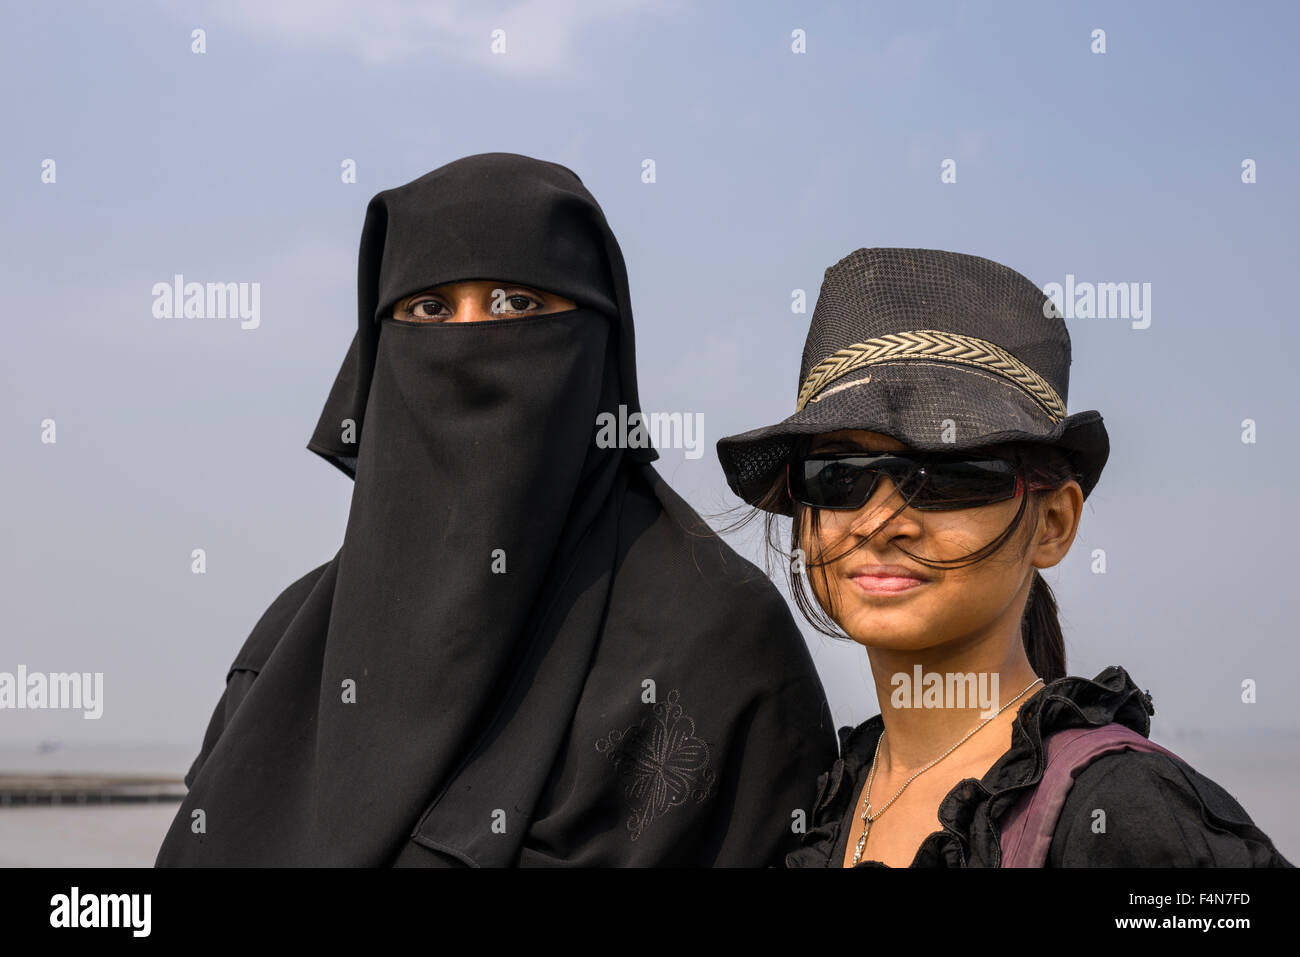 A portrait of two muslim women in contrast to each other, one dressed in the traditional black burka, hijab, and - Stock Image